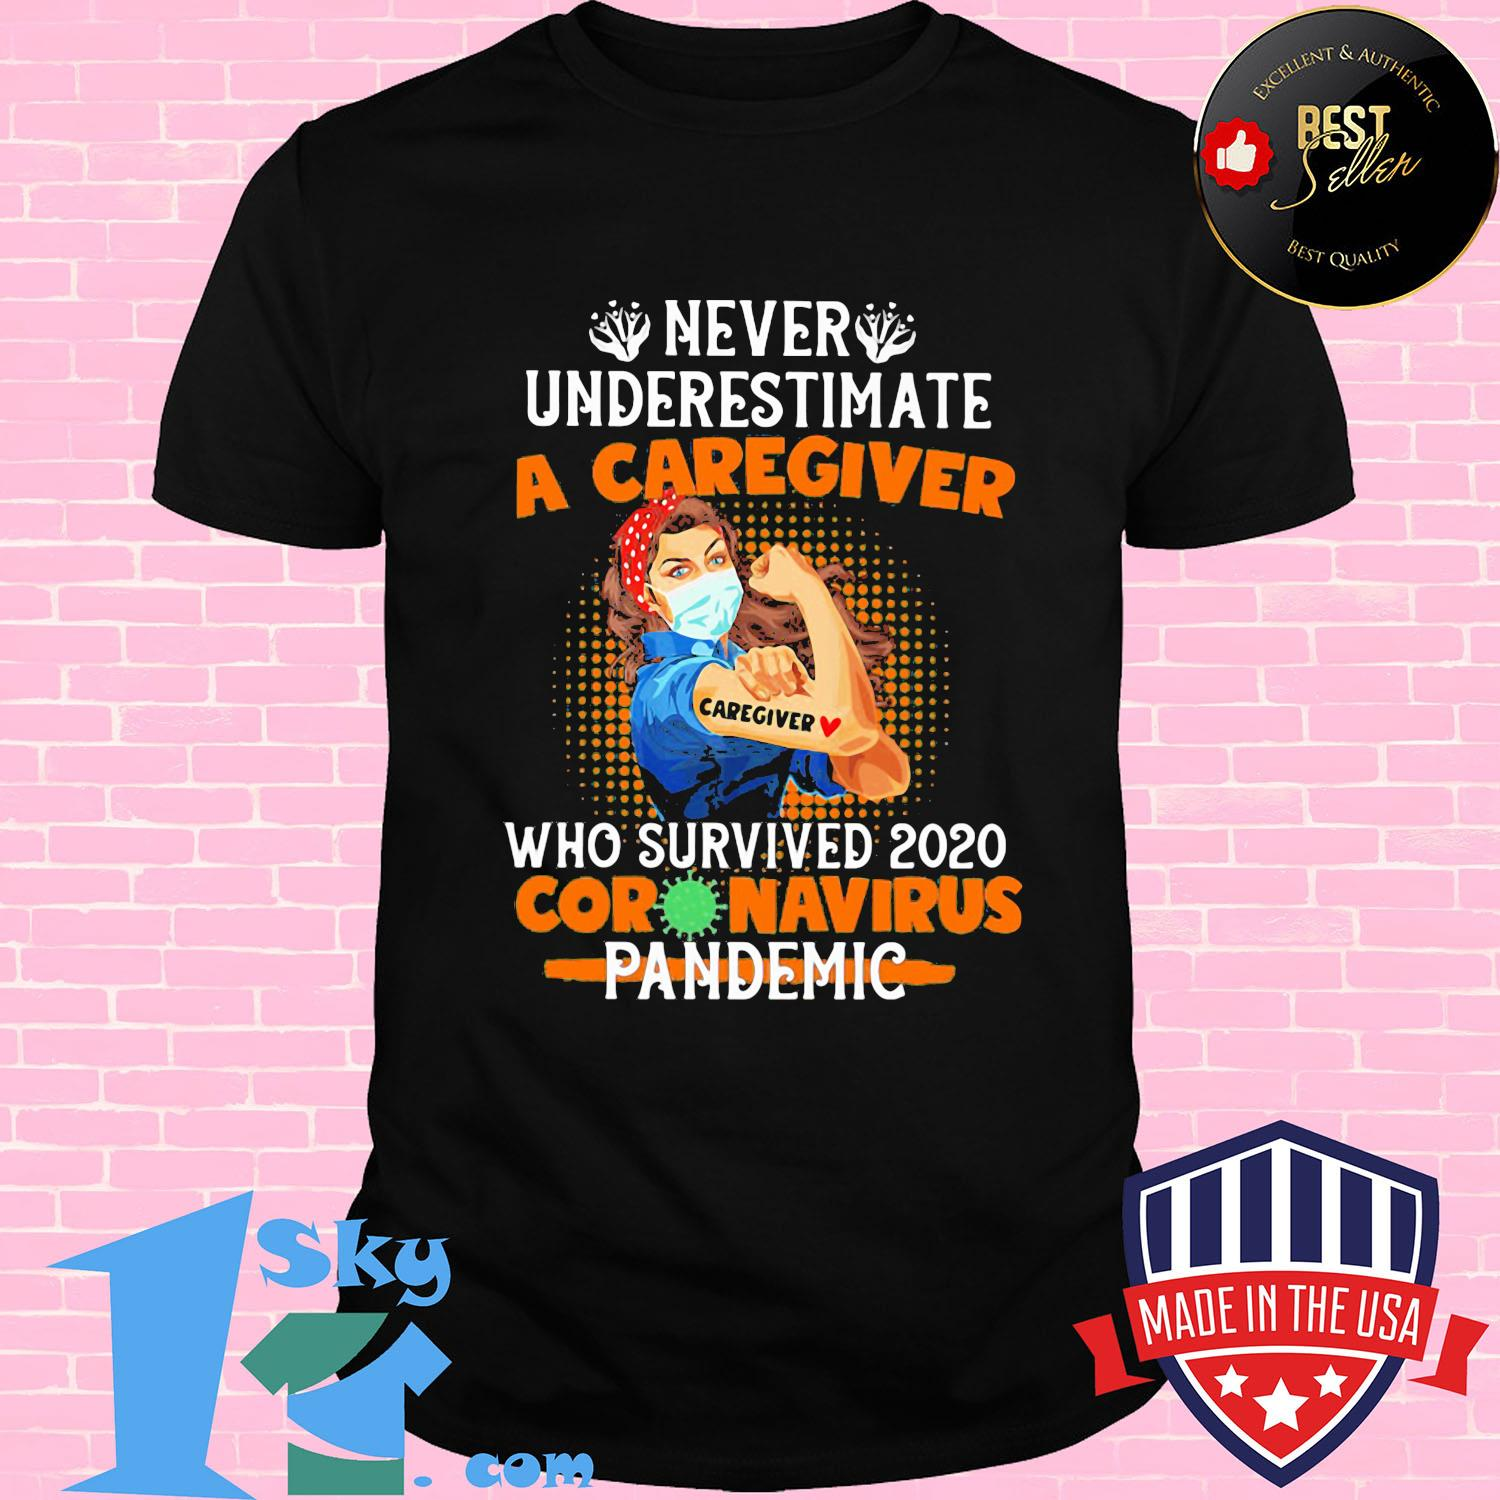 Never underestimate a caregiver who survived 2020 coronavirus pandemic mask shirt